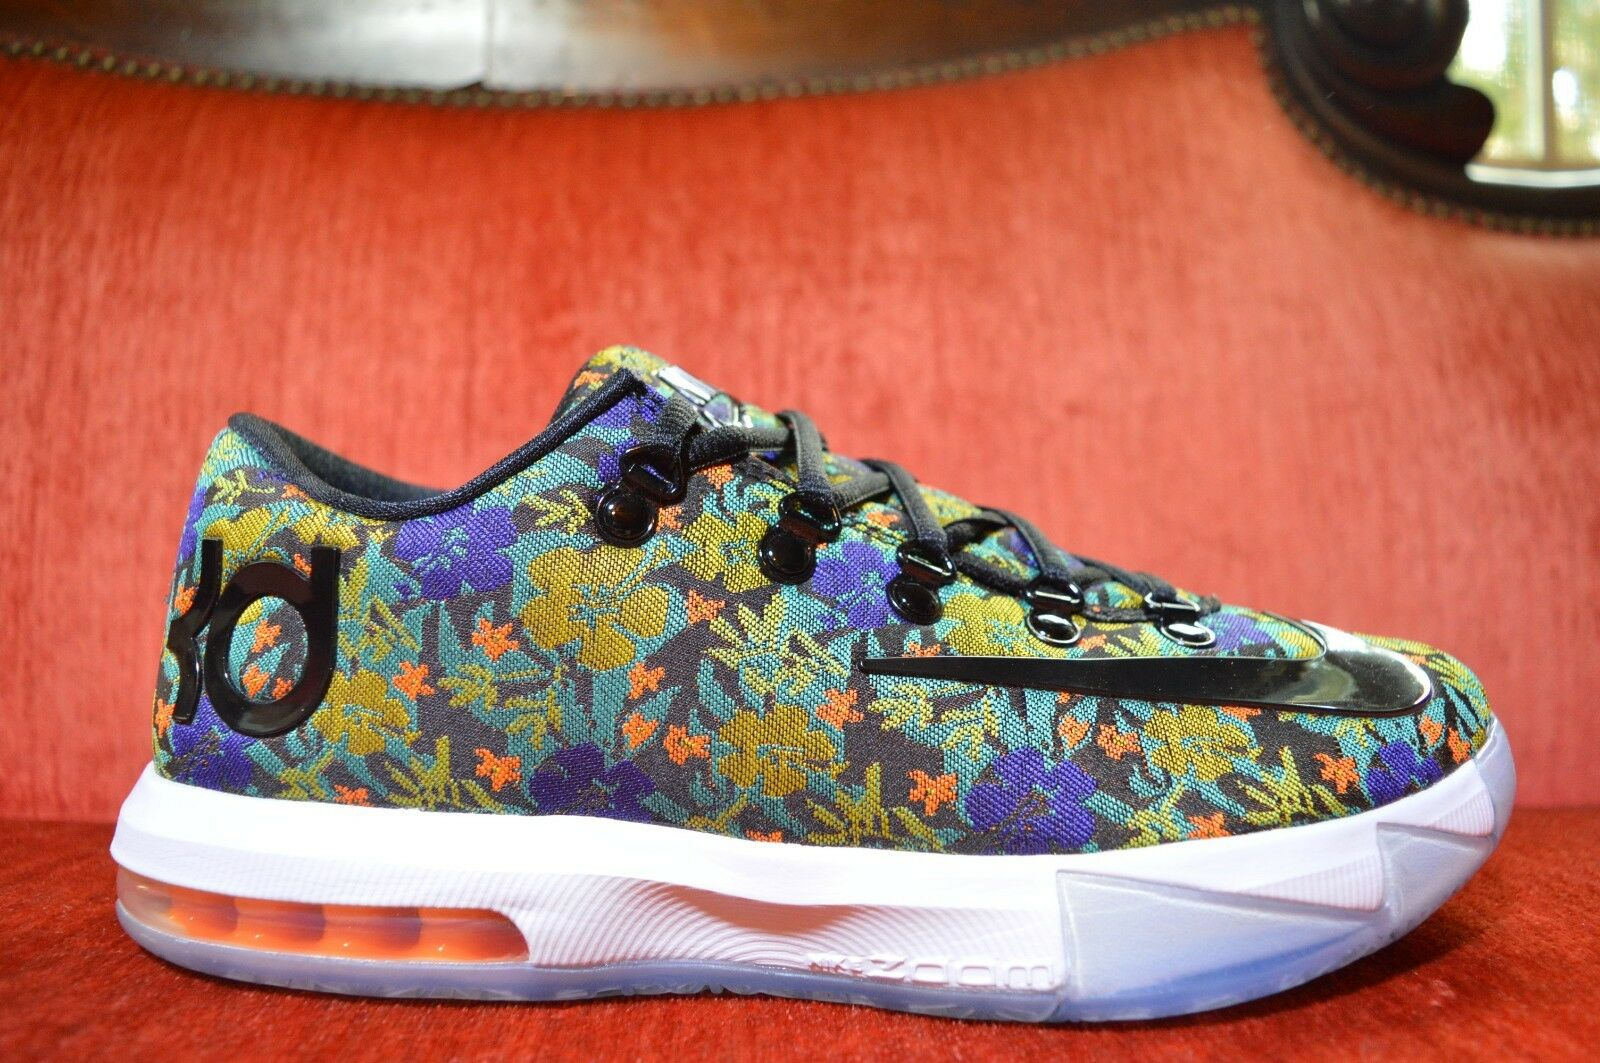 WORN ONCE Nike KD 6 VI EXT Floral QS Size 9. 652120-900 Jordan BHM What The